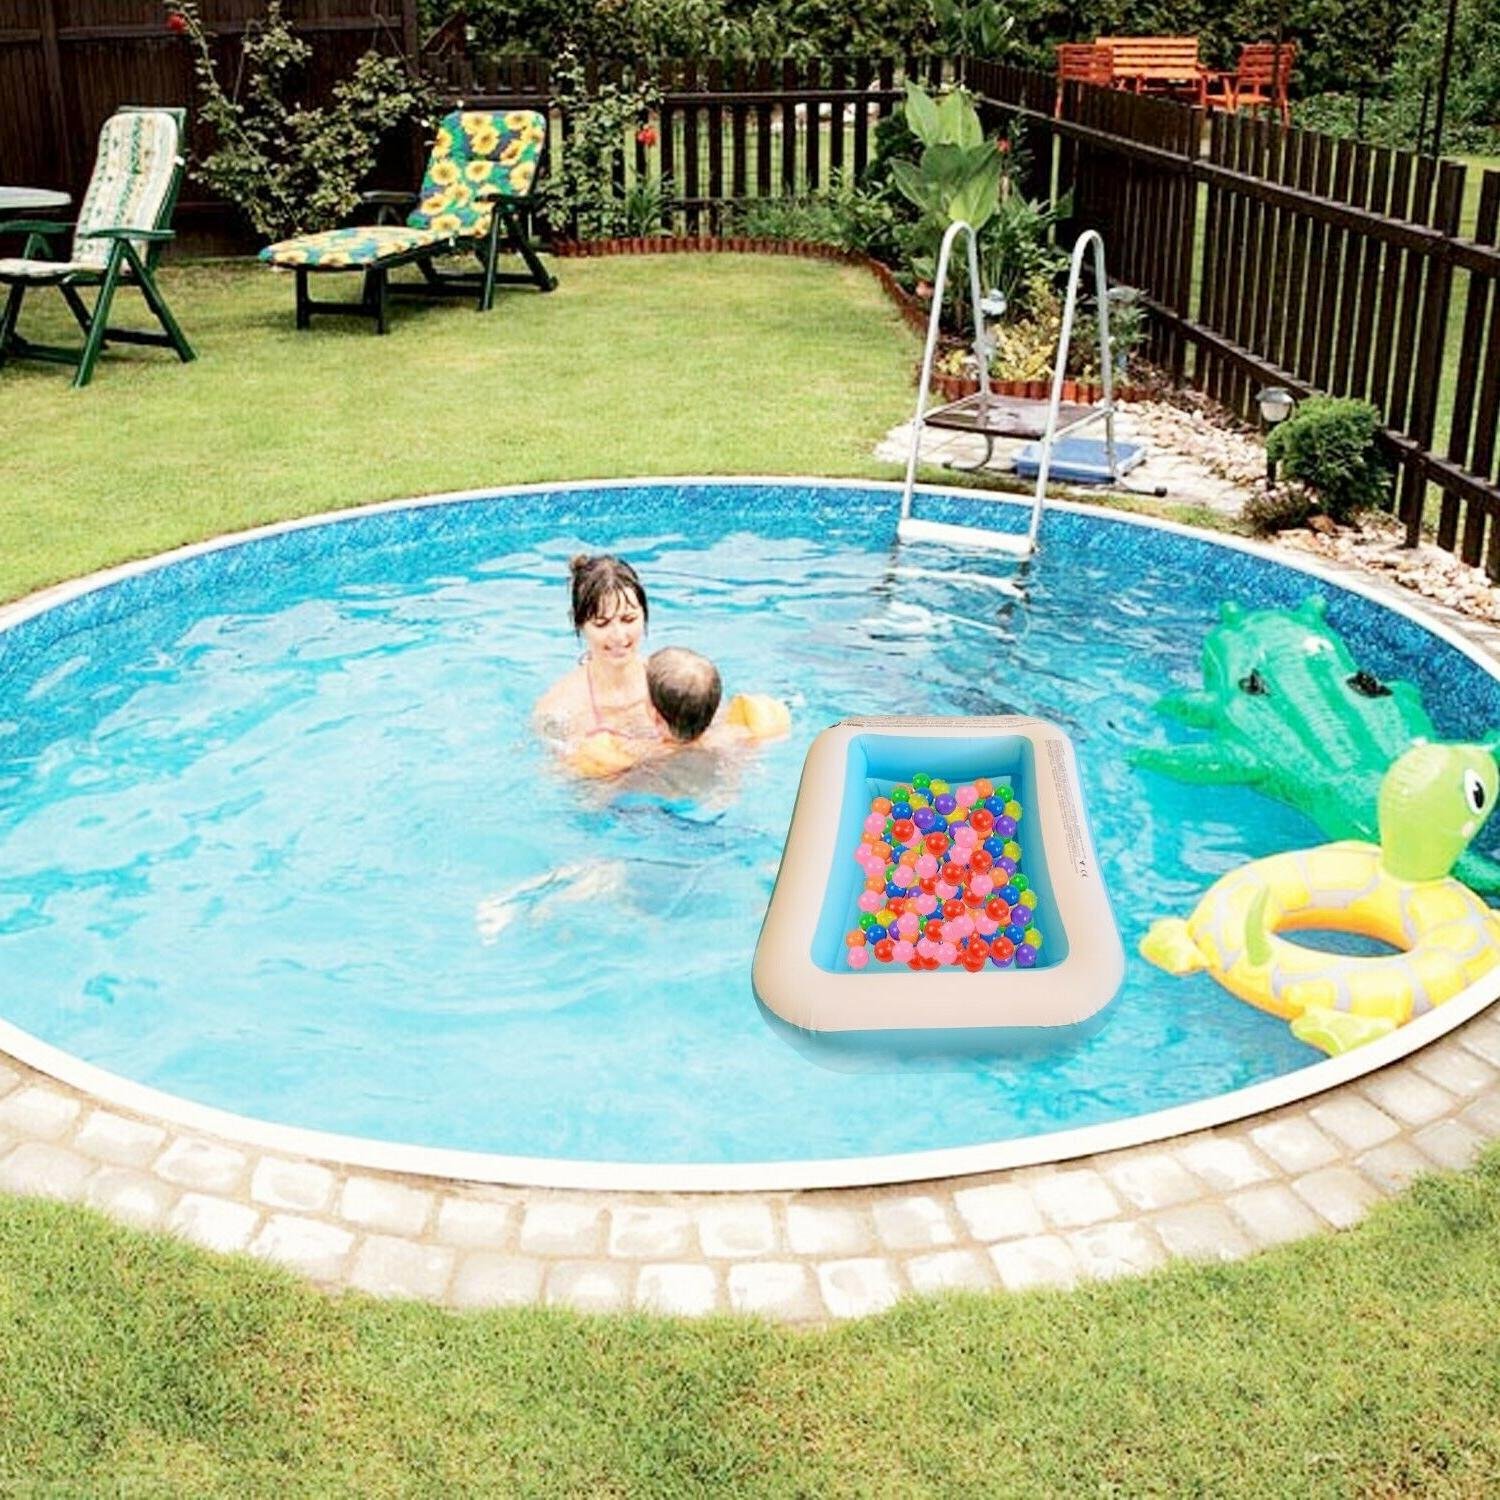 kids pool, mini pool for also be used drinks